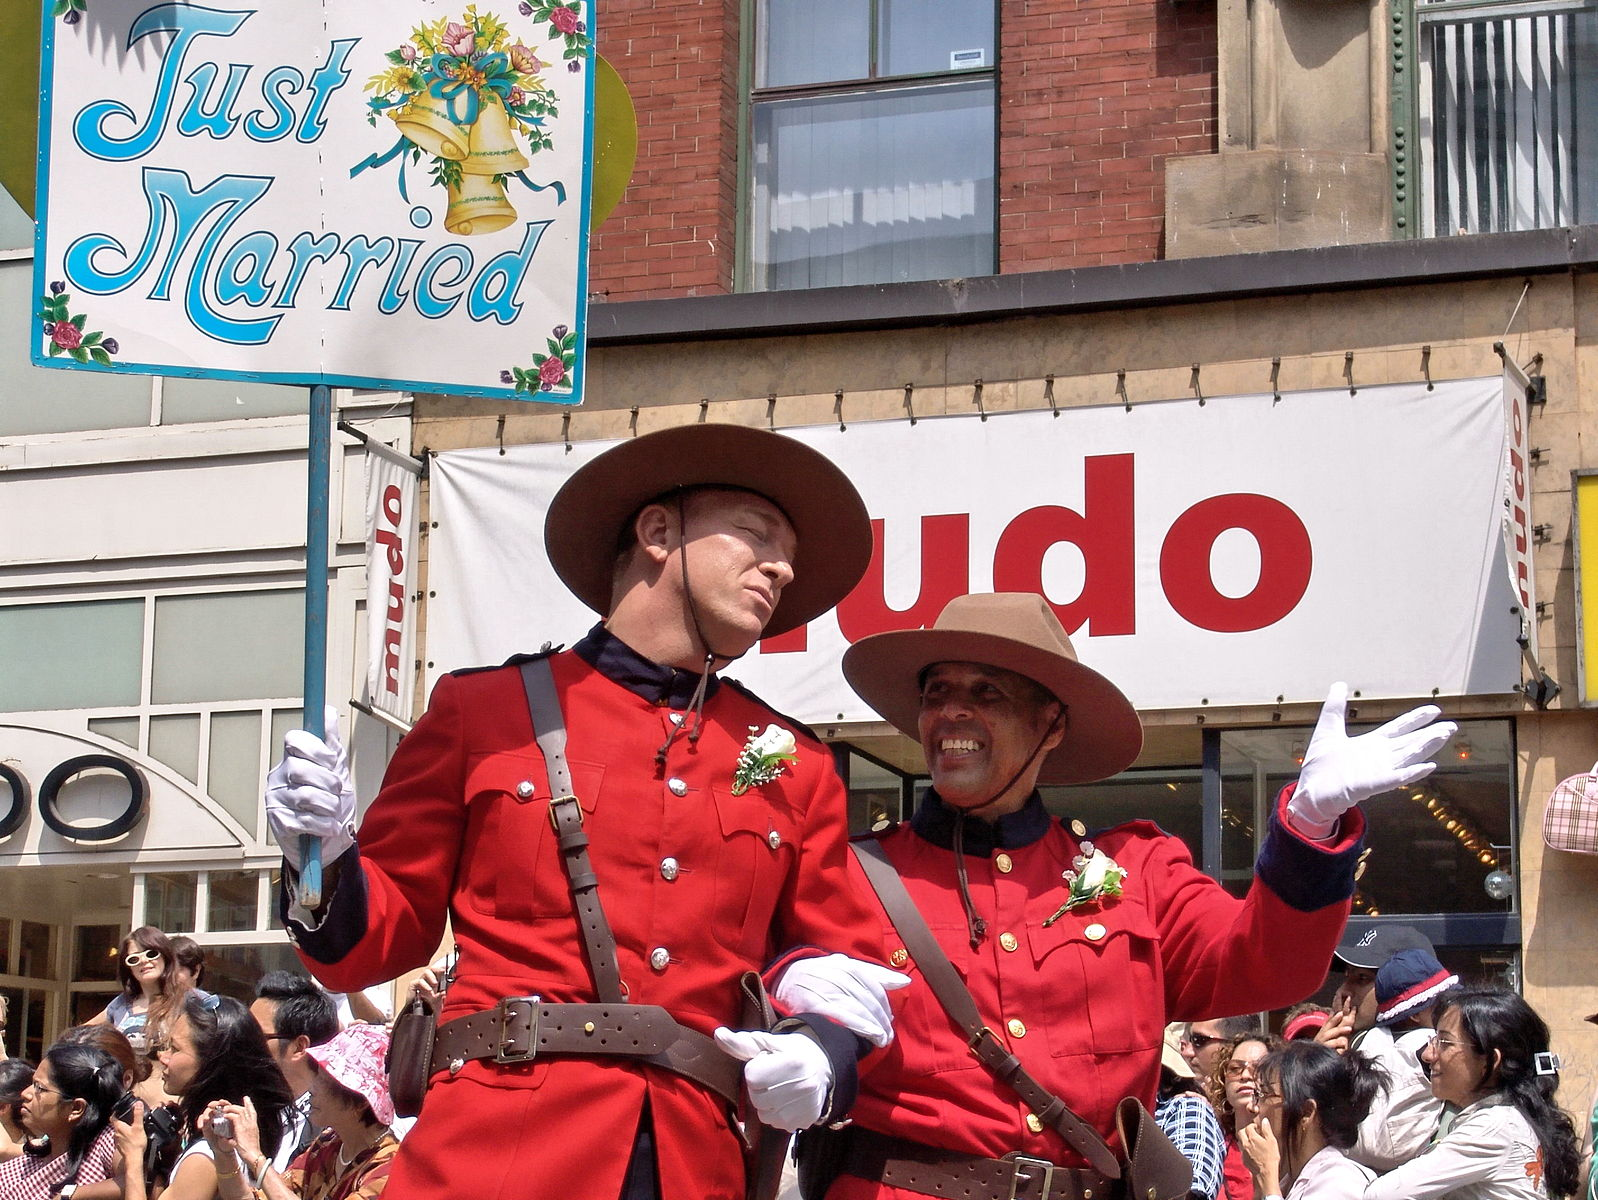 Just_Married_at_Pride_Parade